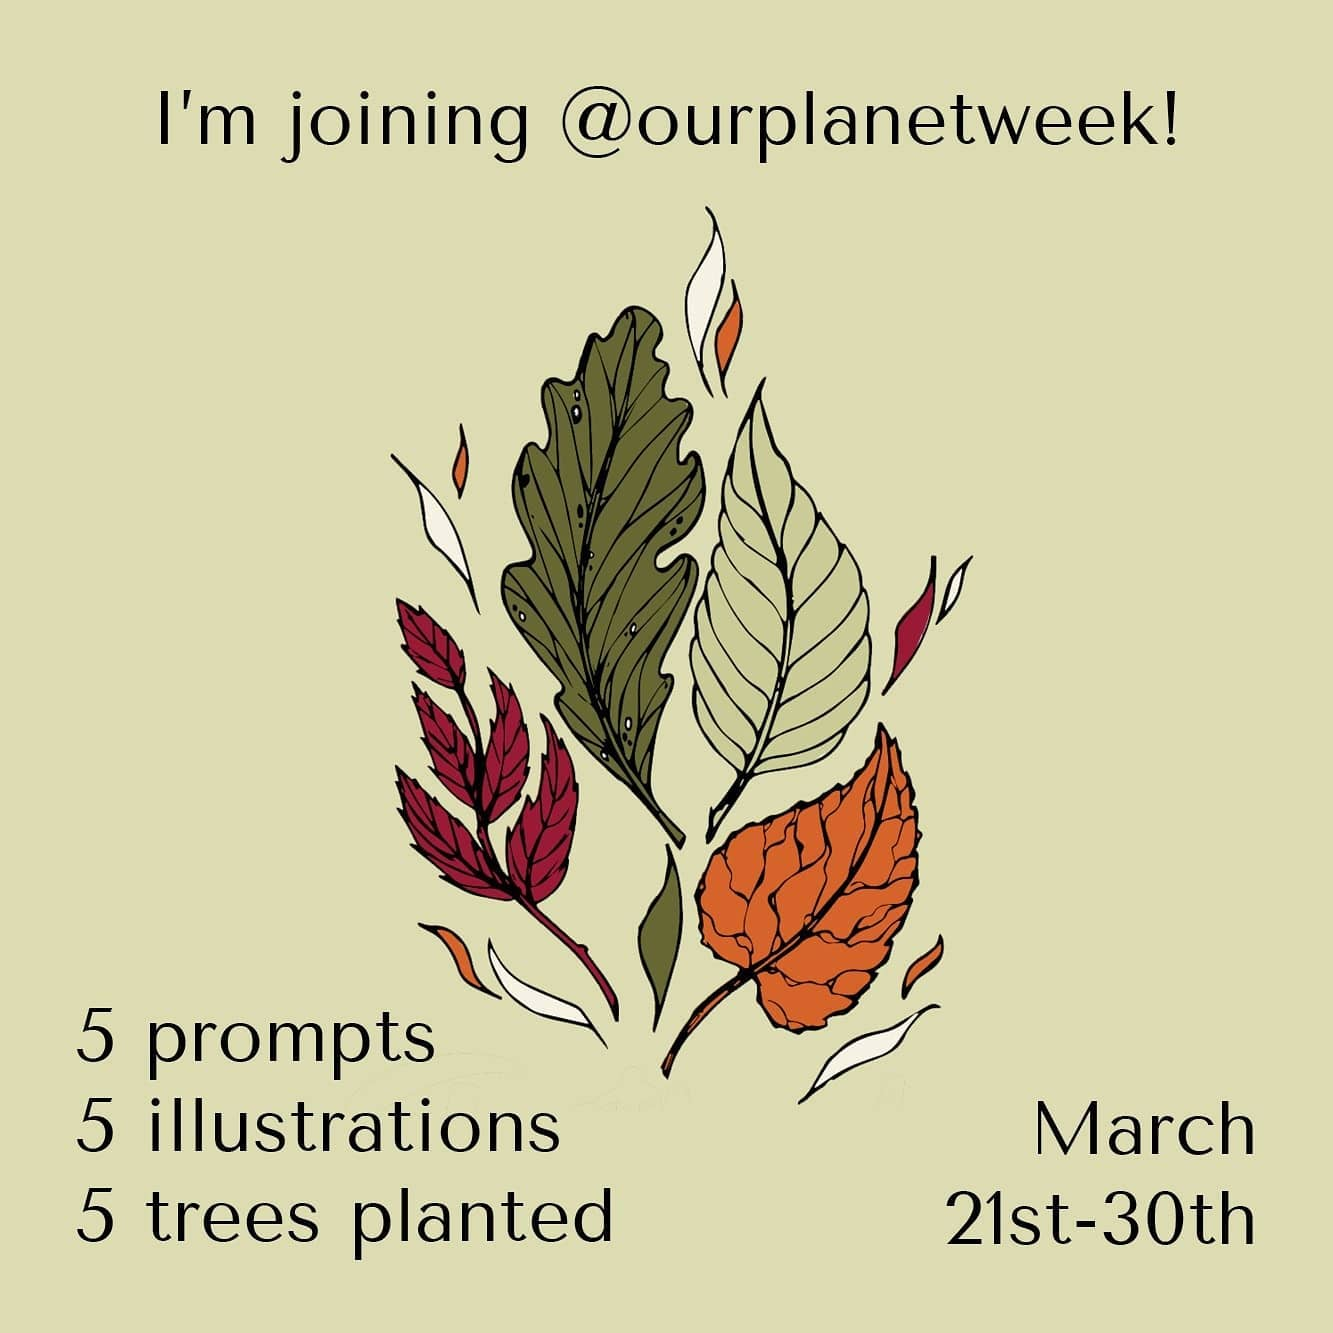 I'm joining @ourplanetweek ! A global art project with 5 prompts, to create 5 illustrations. For every illustration made and posted with the tags, a tree will be planted 🌳! Will you join me?#letsdrawthechange #ourplanetweek #onetreeplanted